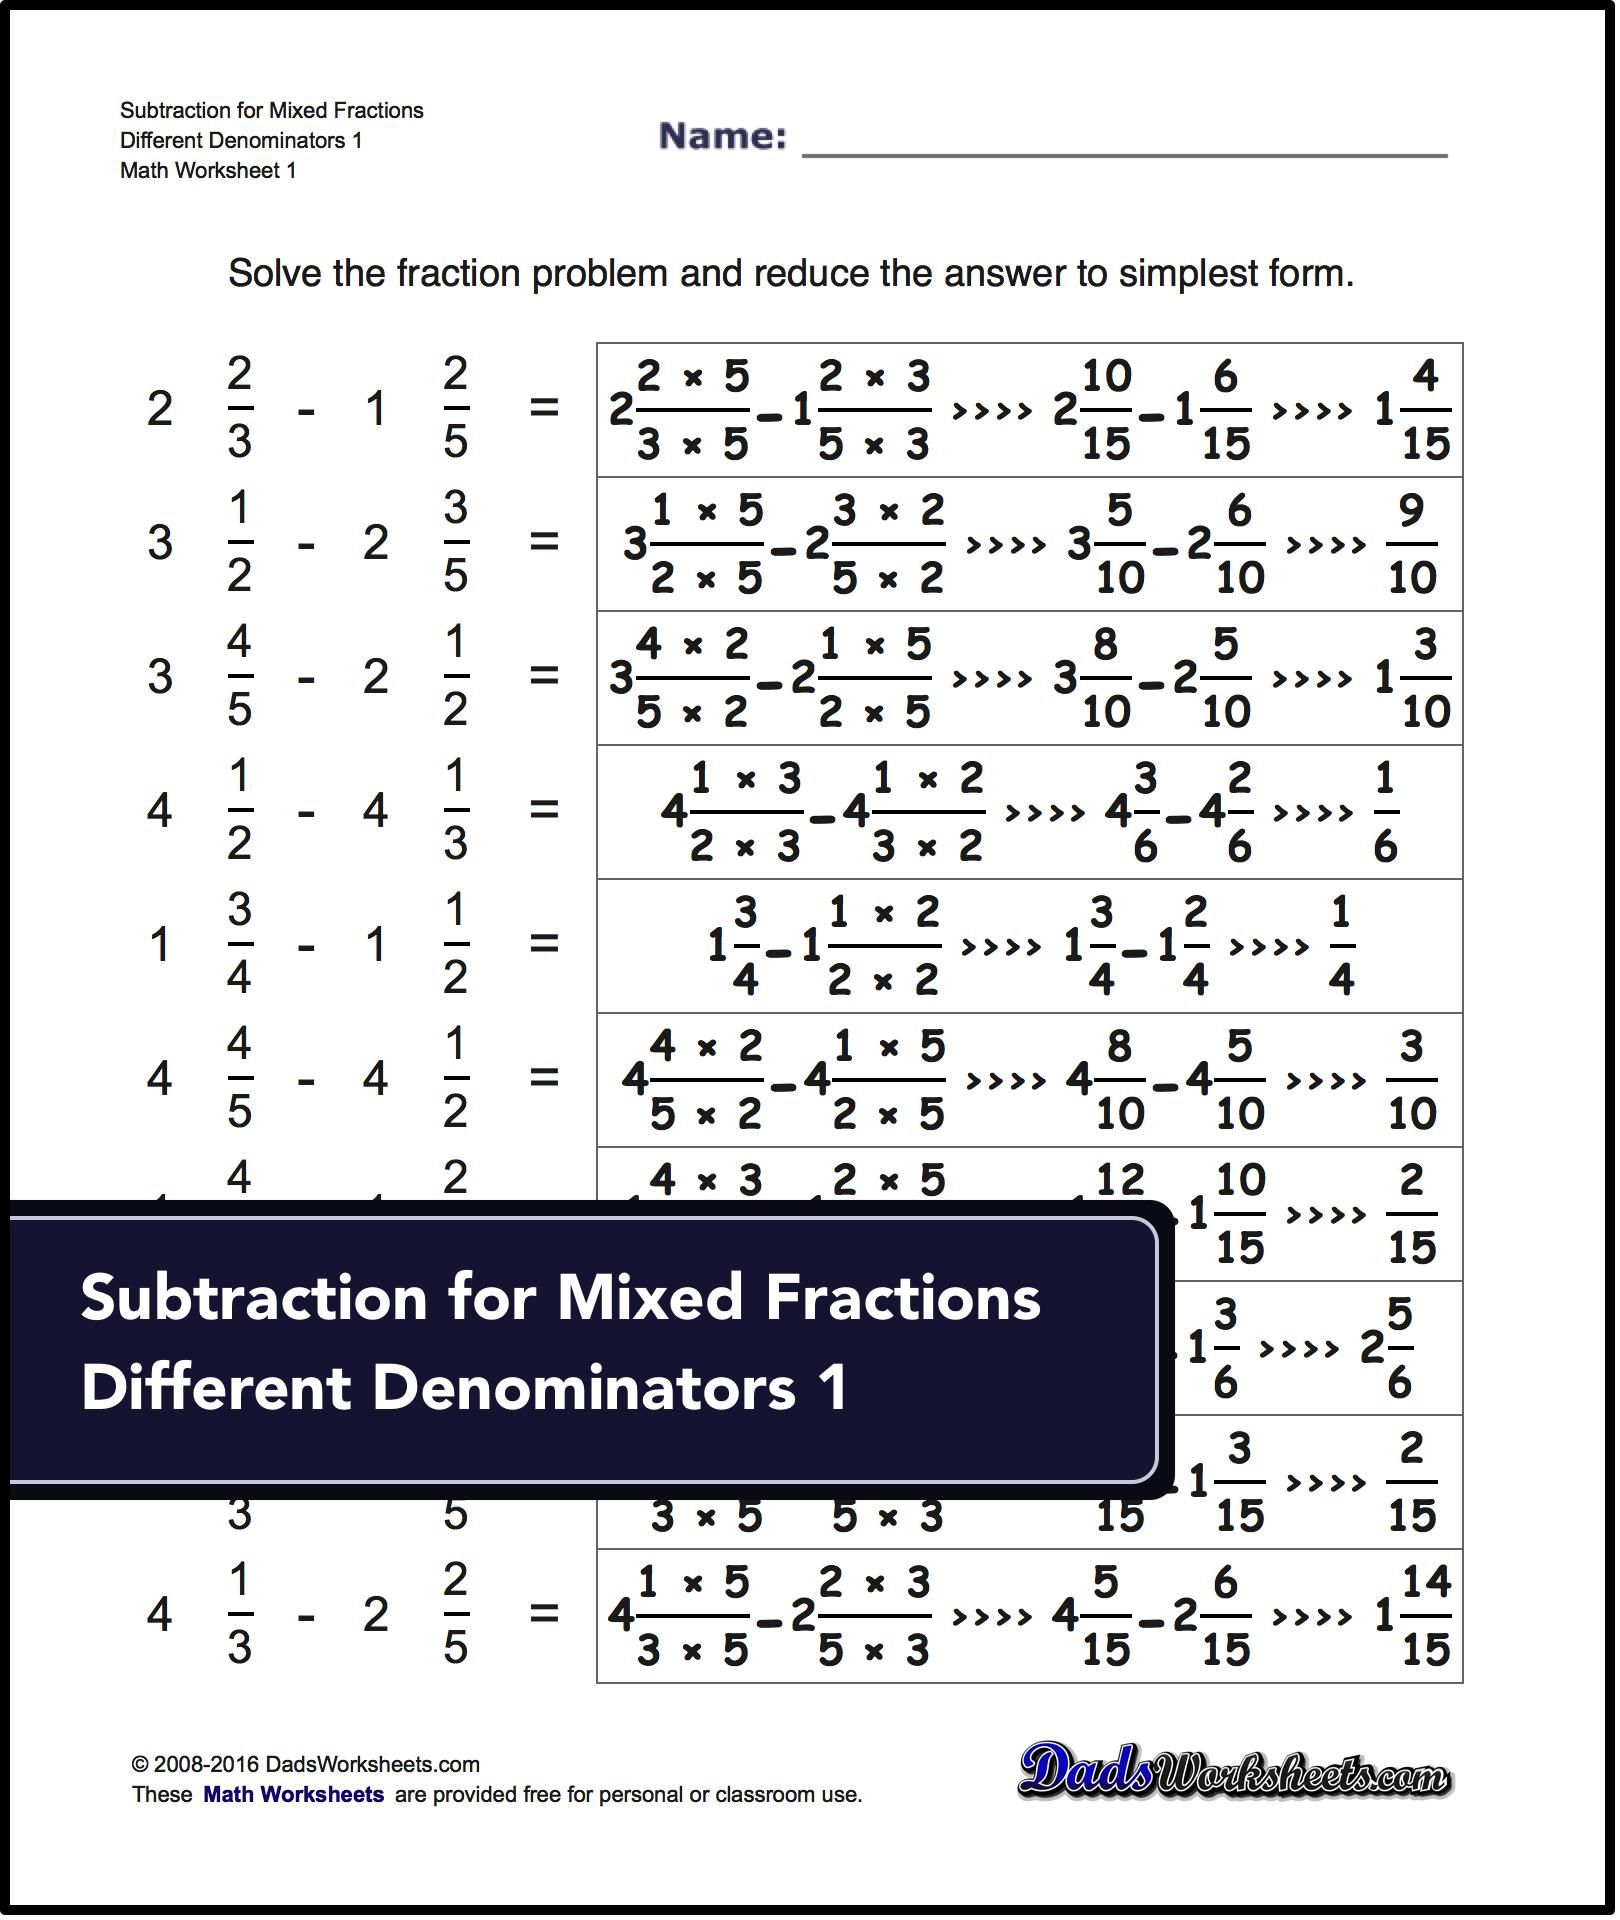 Subtracting Fractions Worksheets Subtraction Of Mixed